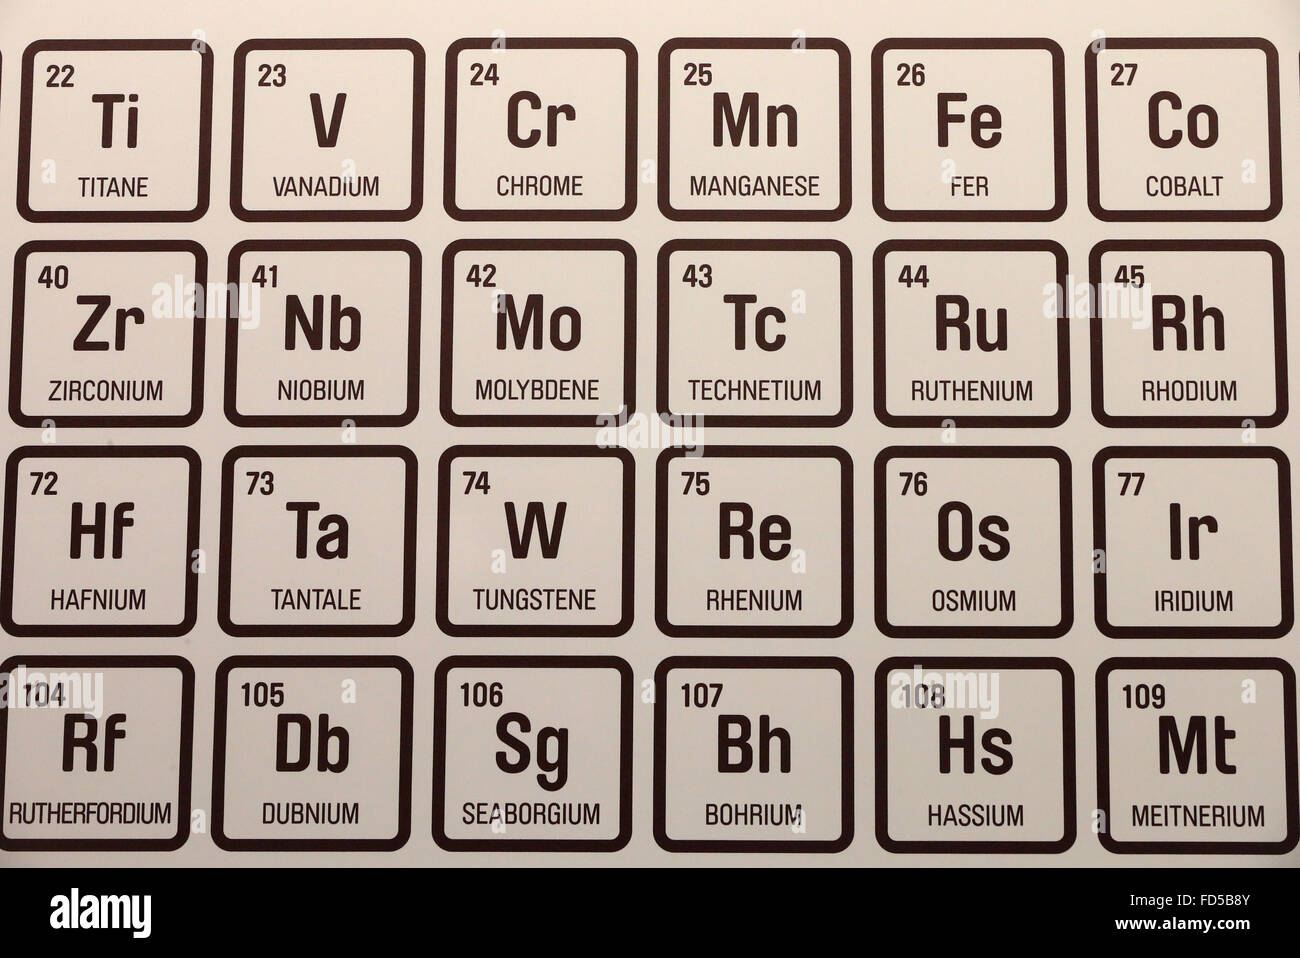 Palais de la Decouverte. Chemistry. The periodic table. - Stock Image